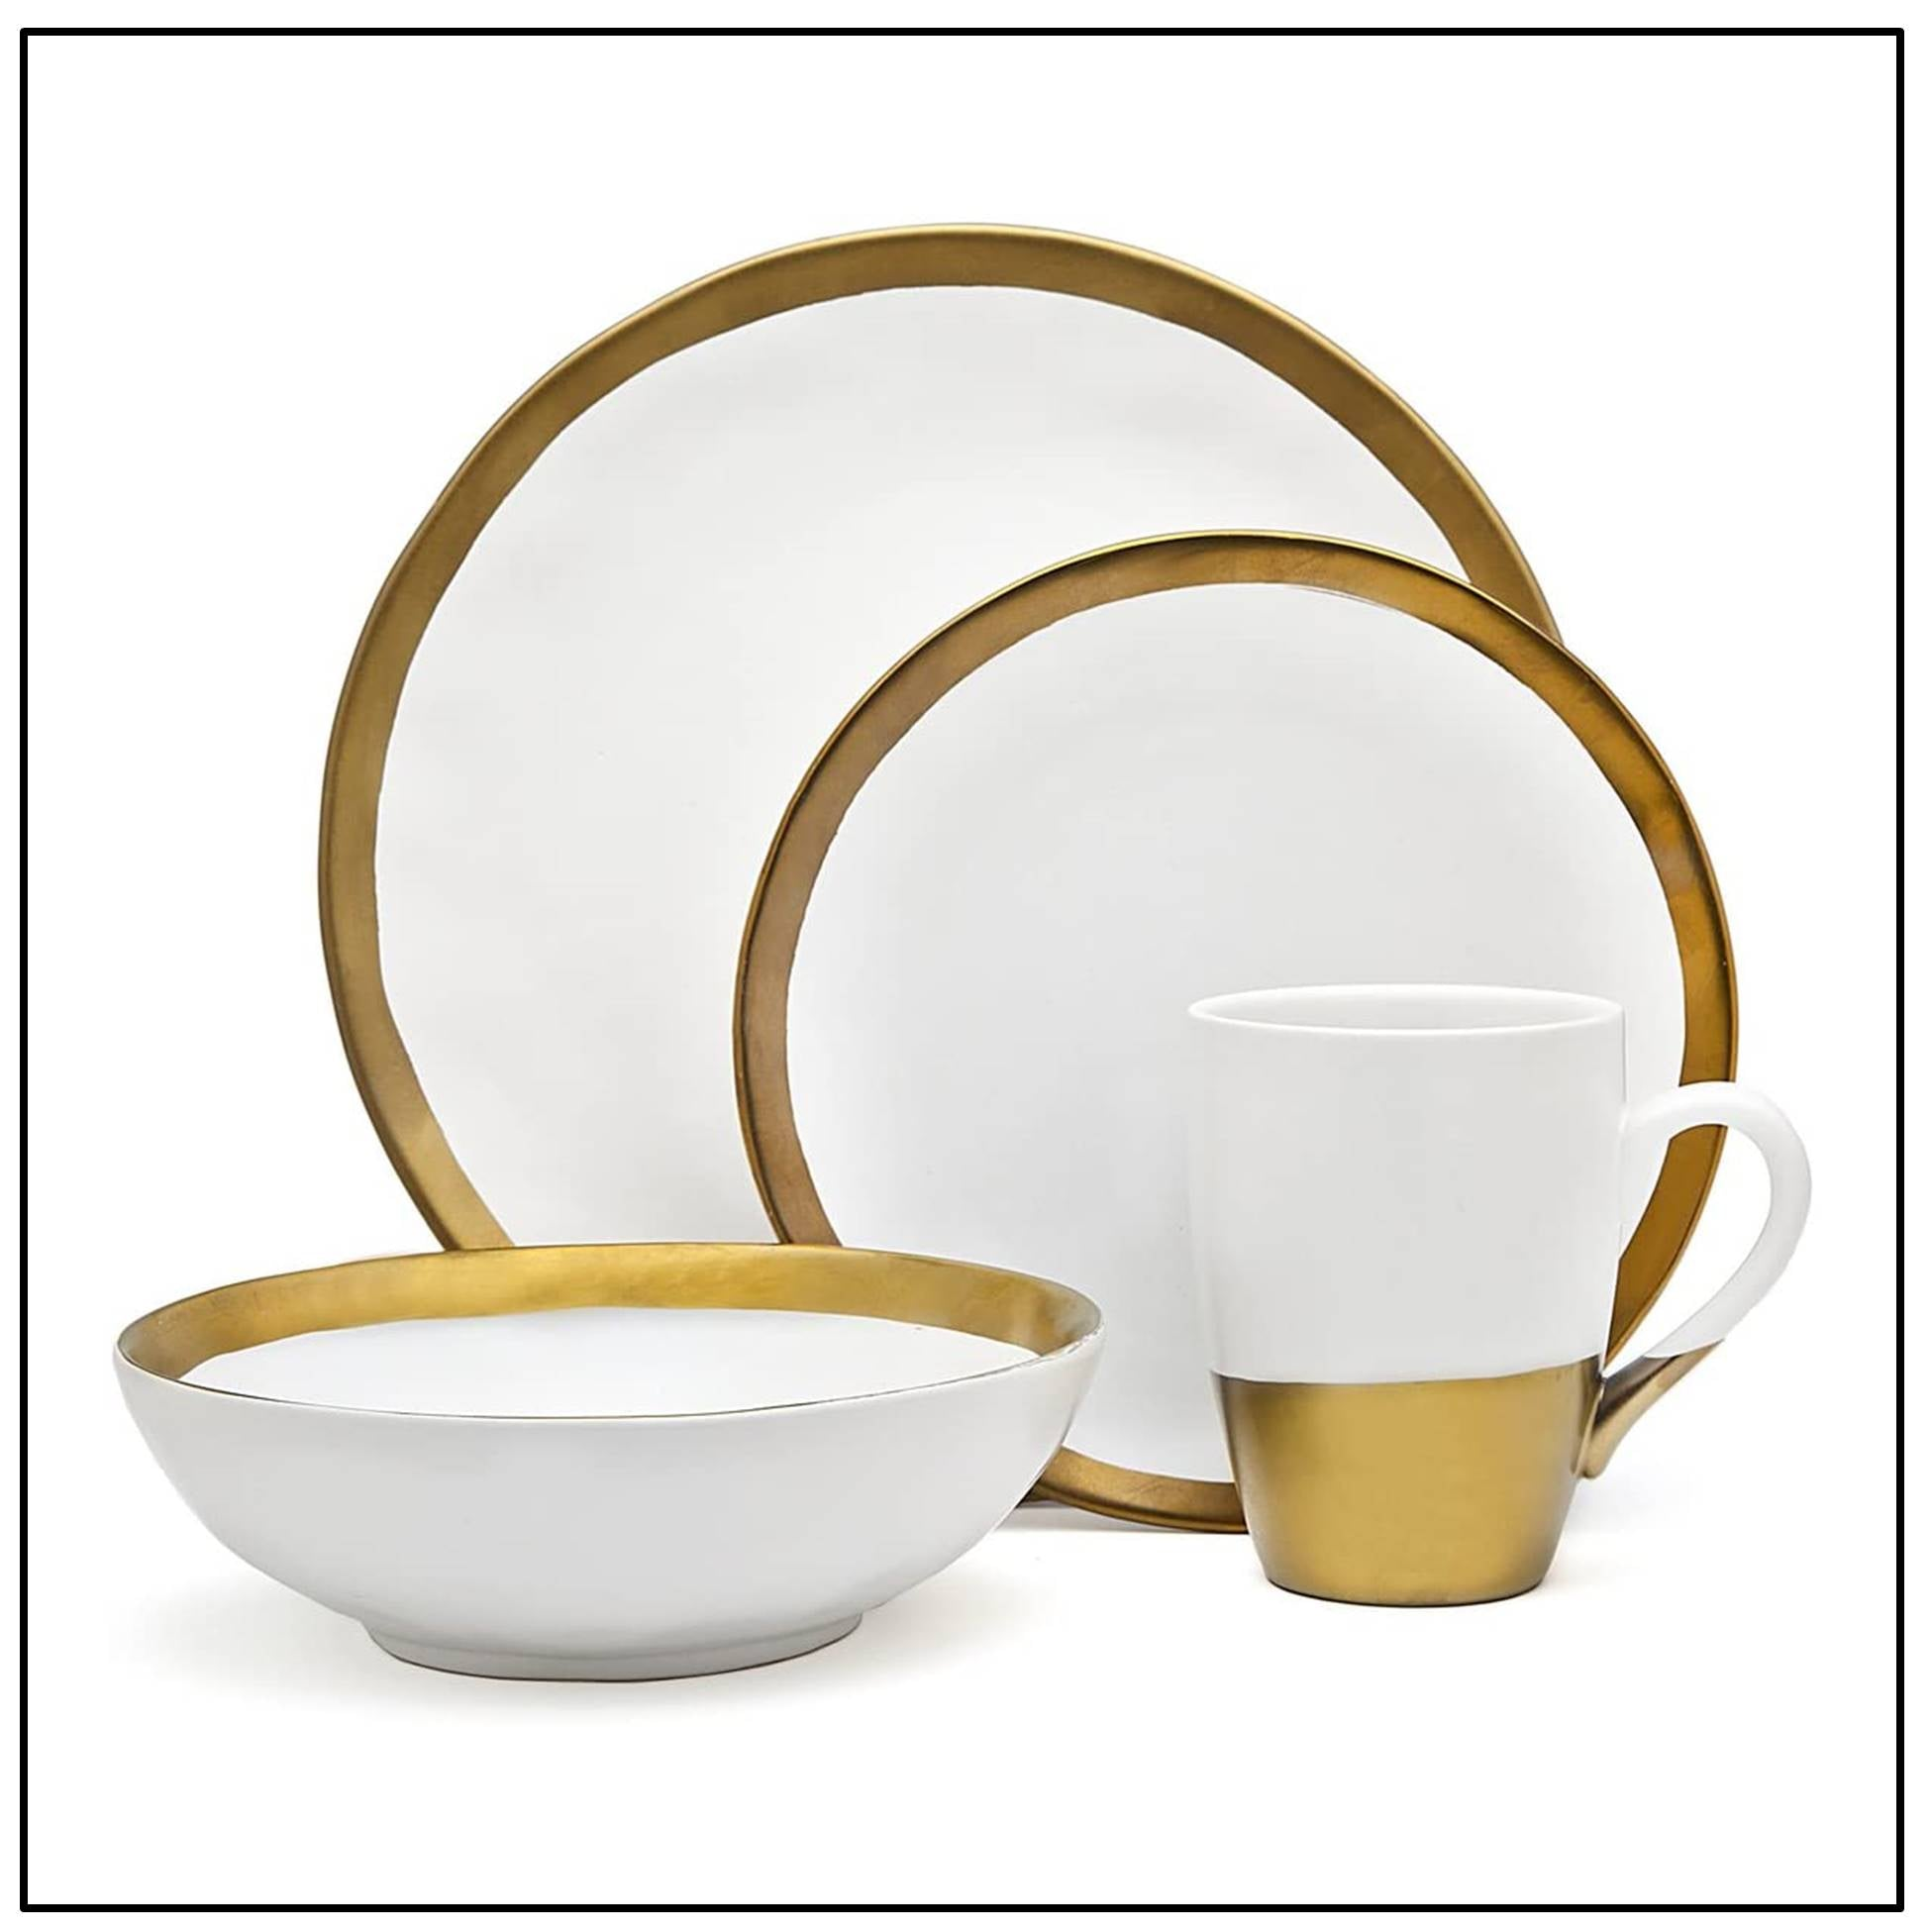 Gatherings Gold/White 16pc, service for 4